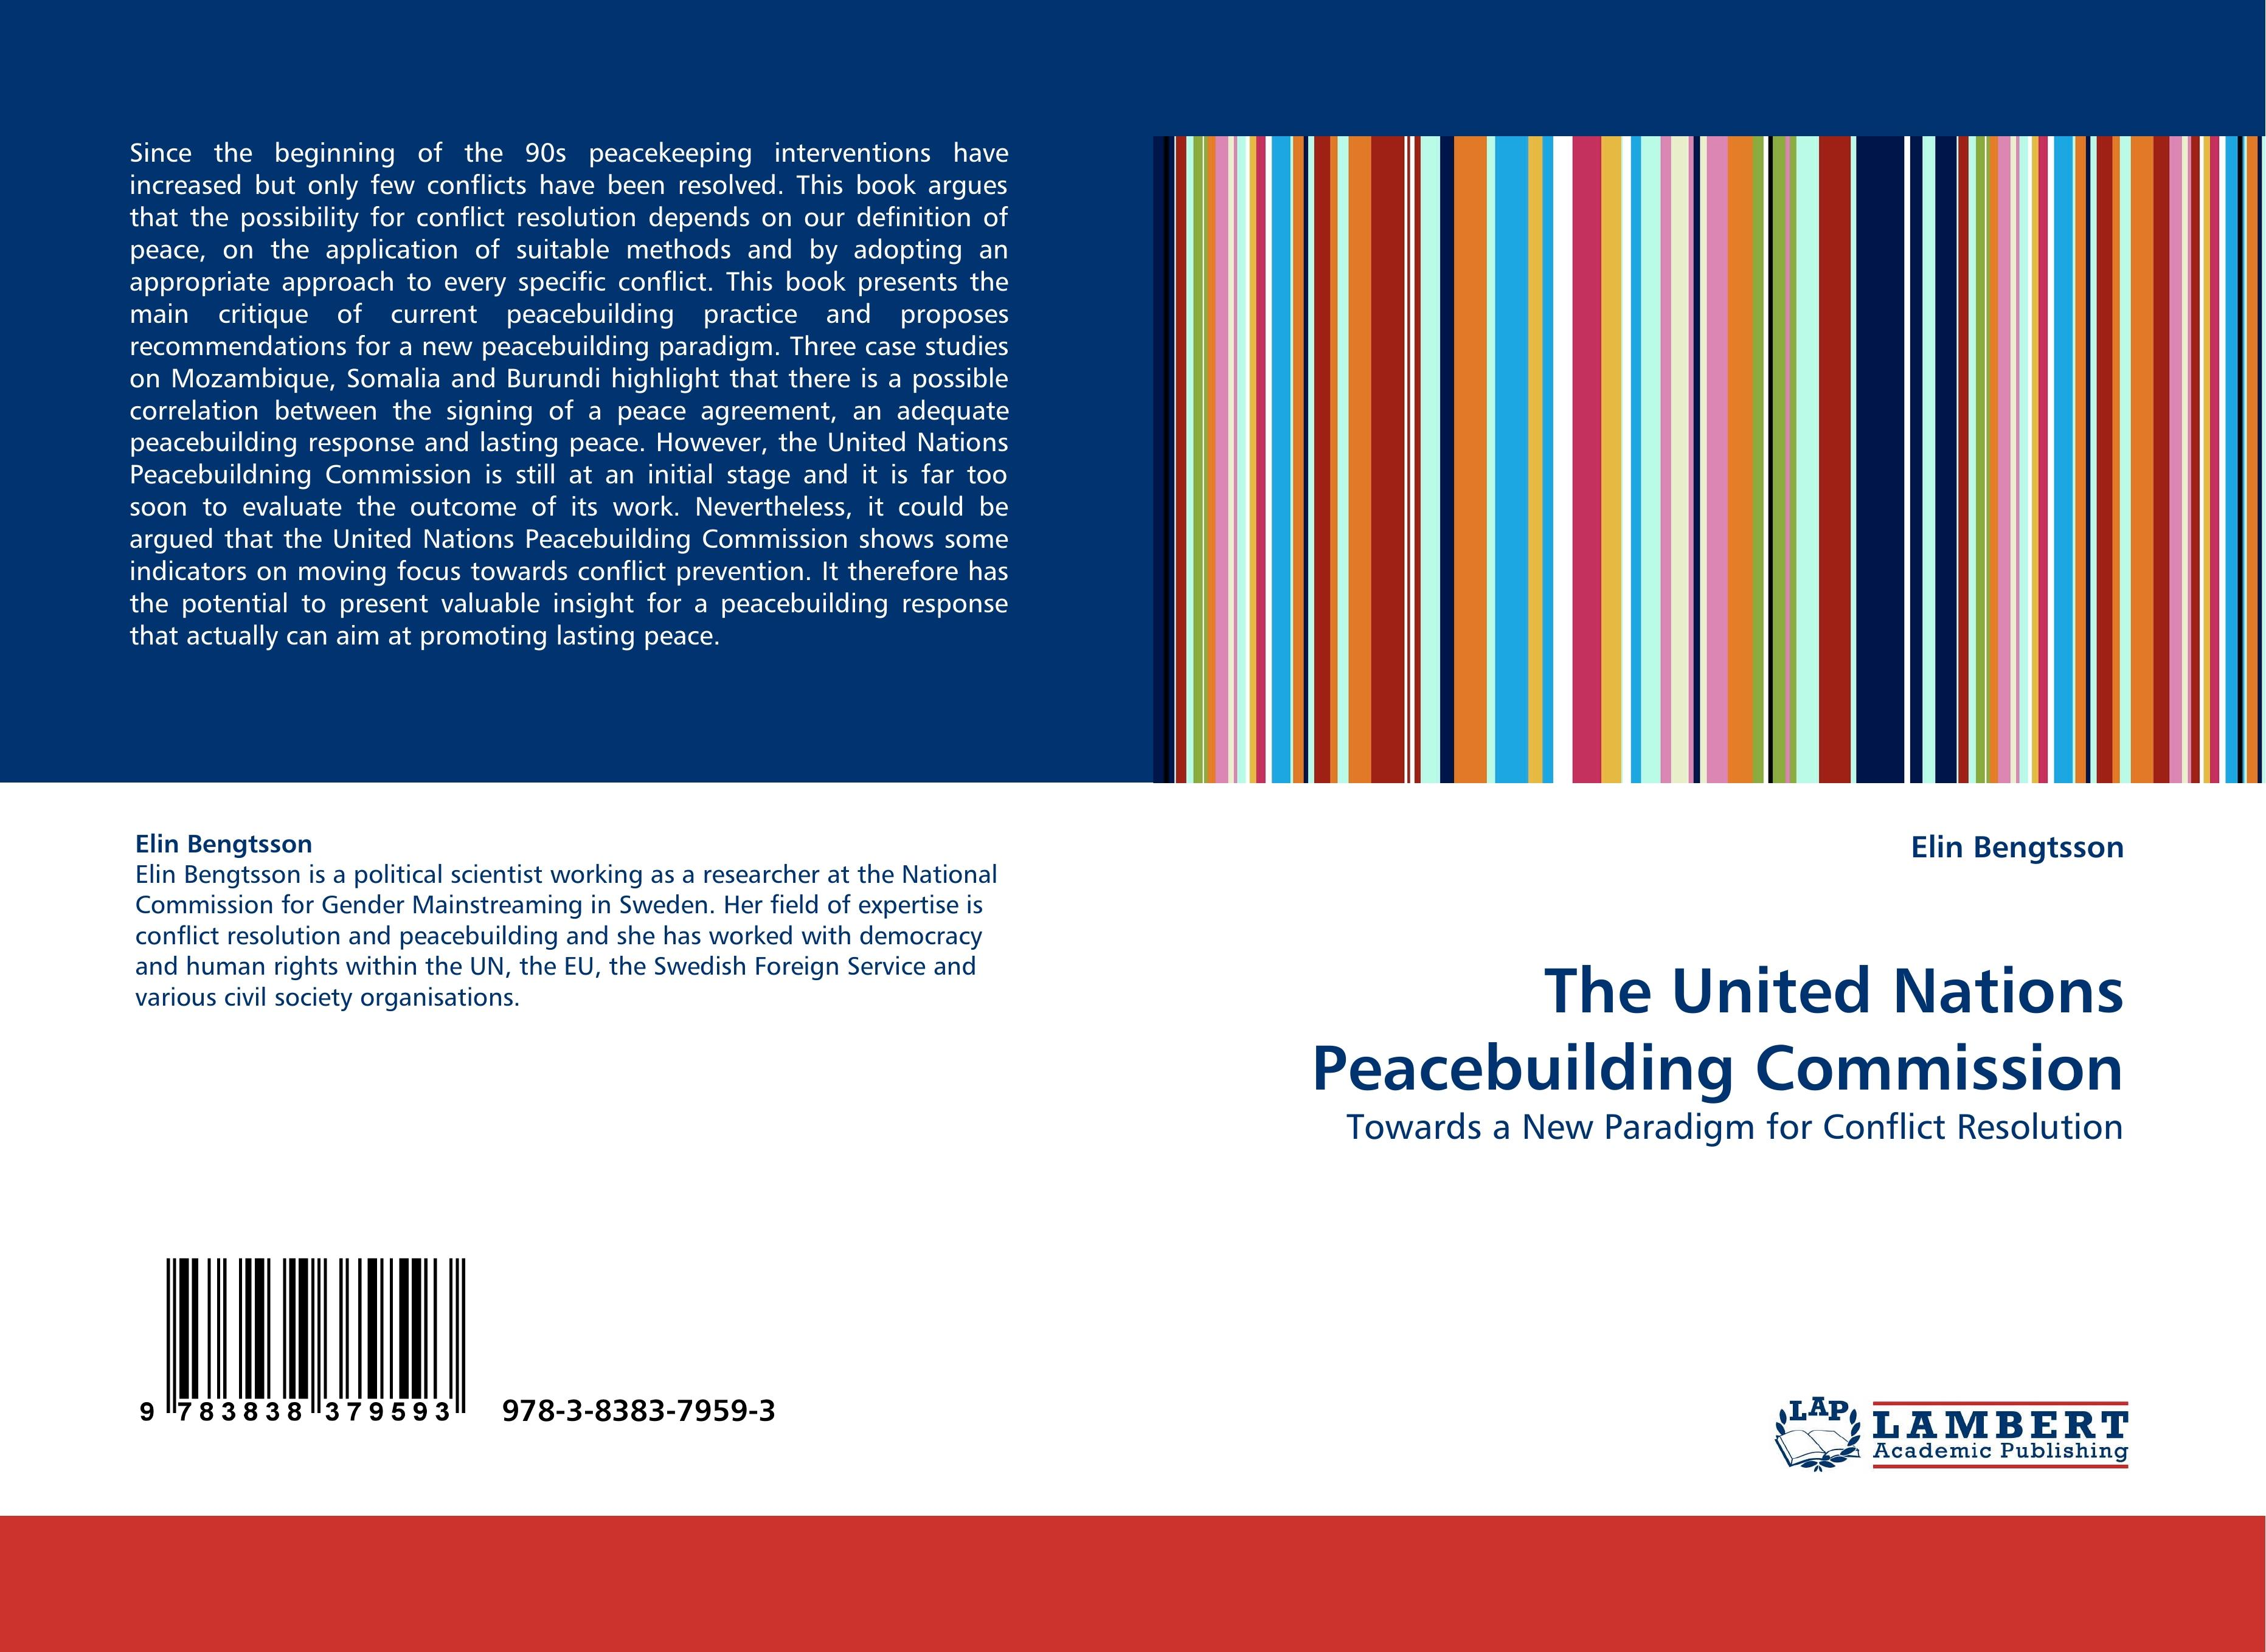 The United Nations Peacebuilding Commission  Towards a New Paradigm for Conflict Resolution  Elin Bengtsson  Taschenbuch  Paperback  Englisch  2010 - Bengtsson, Elin